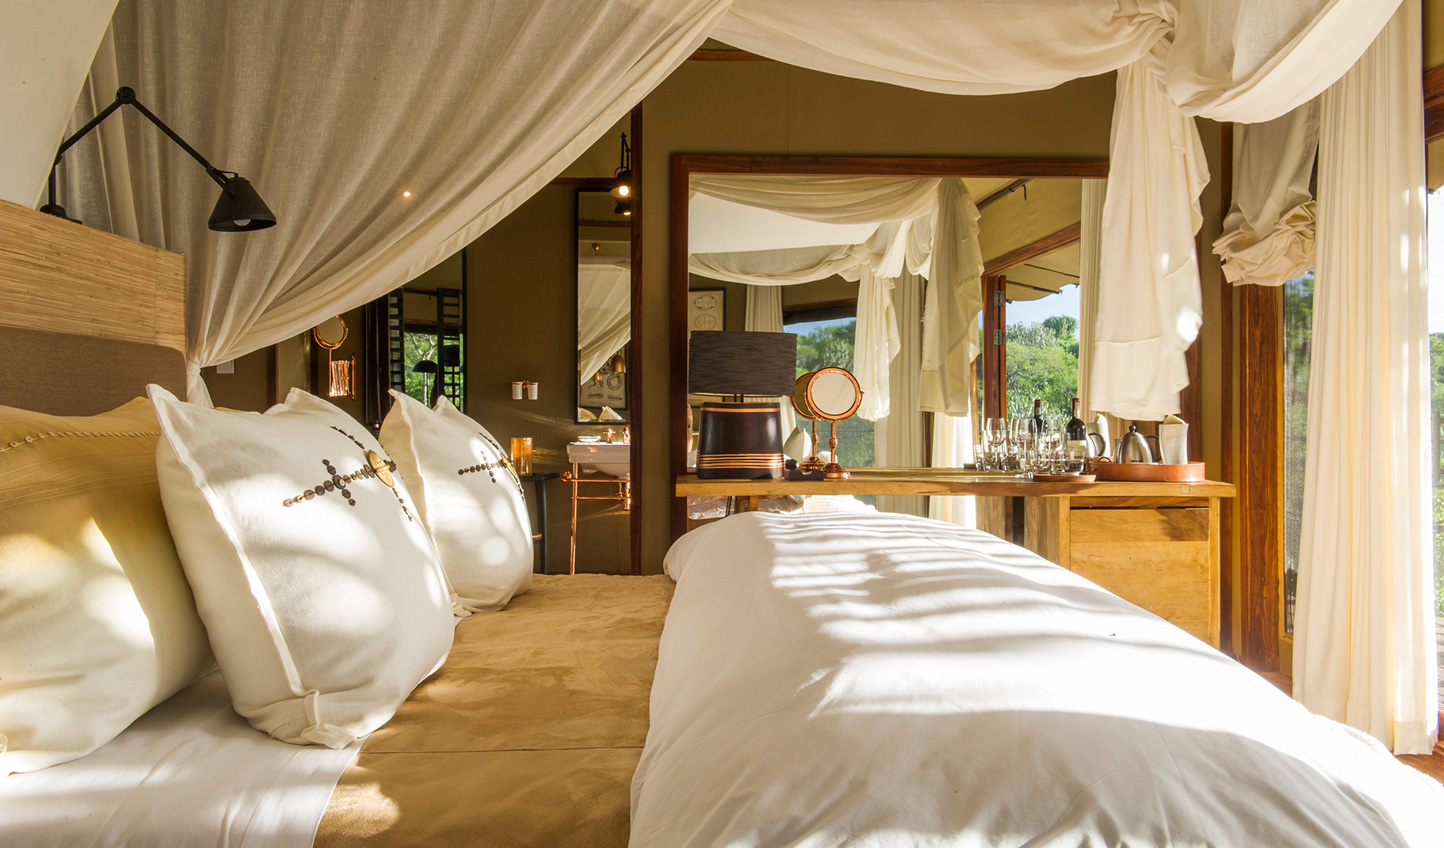 Traditional elegance meets modern luxury in your tented suite